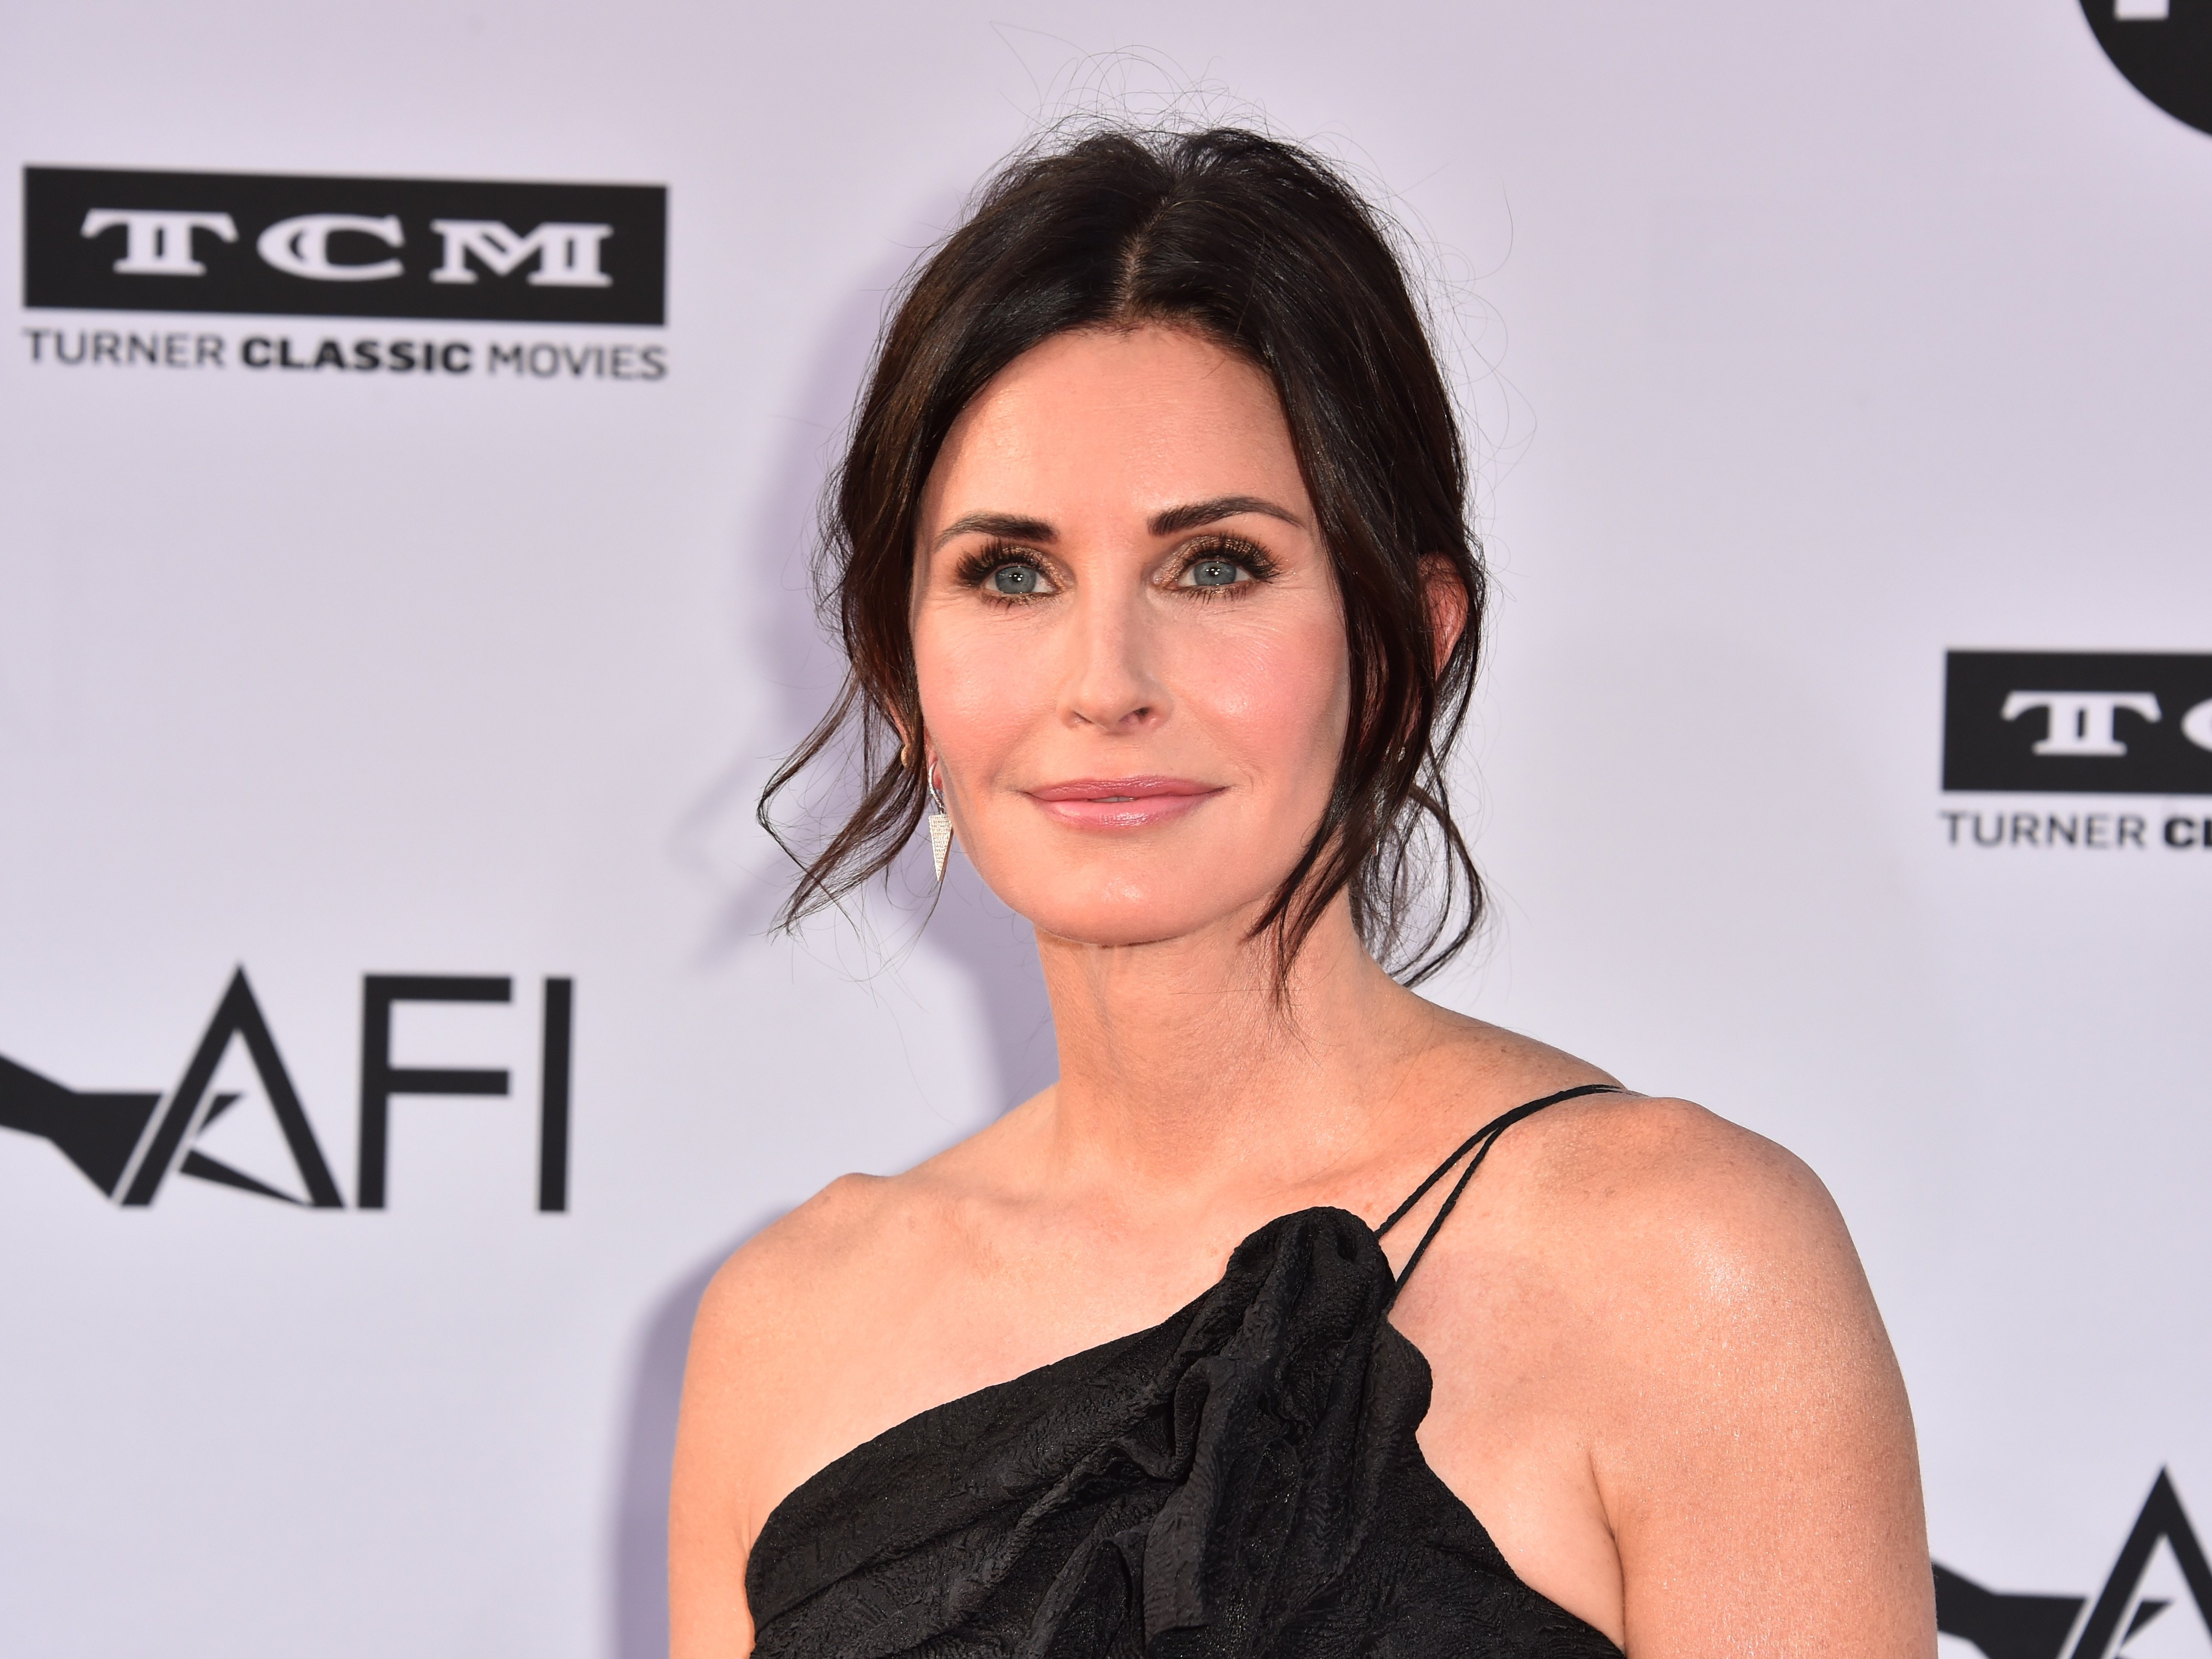 Courteney Cox attends the American Film Institute's 46th Life Achievement Award Gala Tribute to George Clooney at Dolby Theatre on June 7, 2018.   Photo: Getty Images